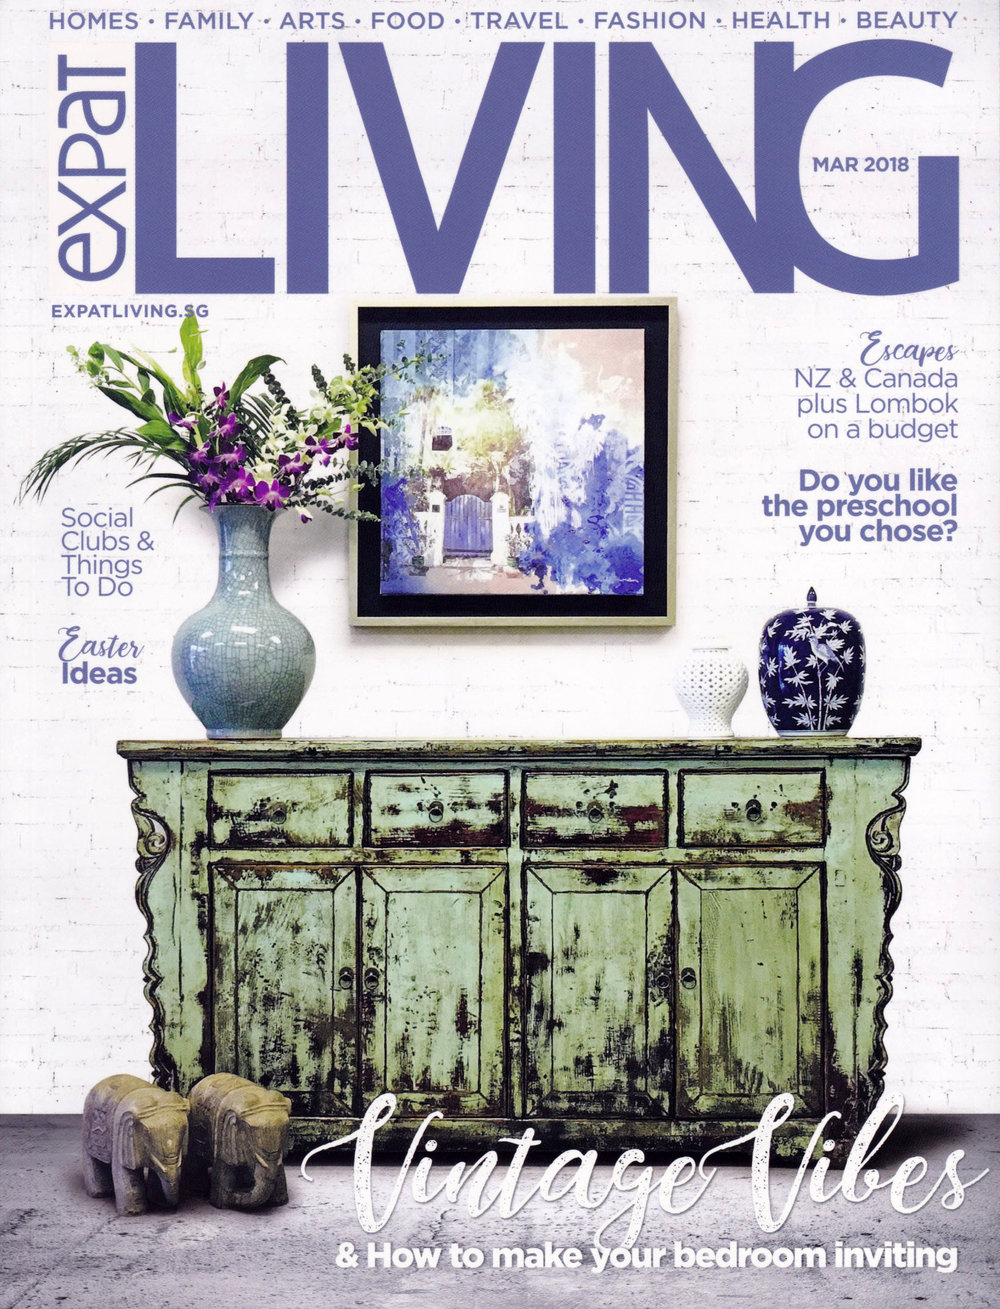 Expat Living March 2018 - Cover.jpeg